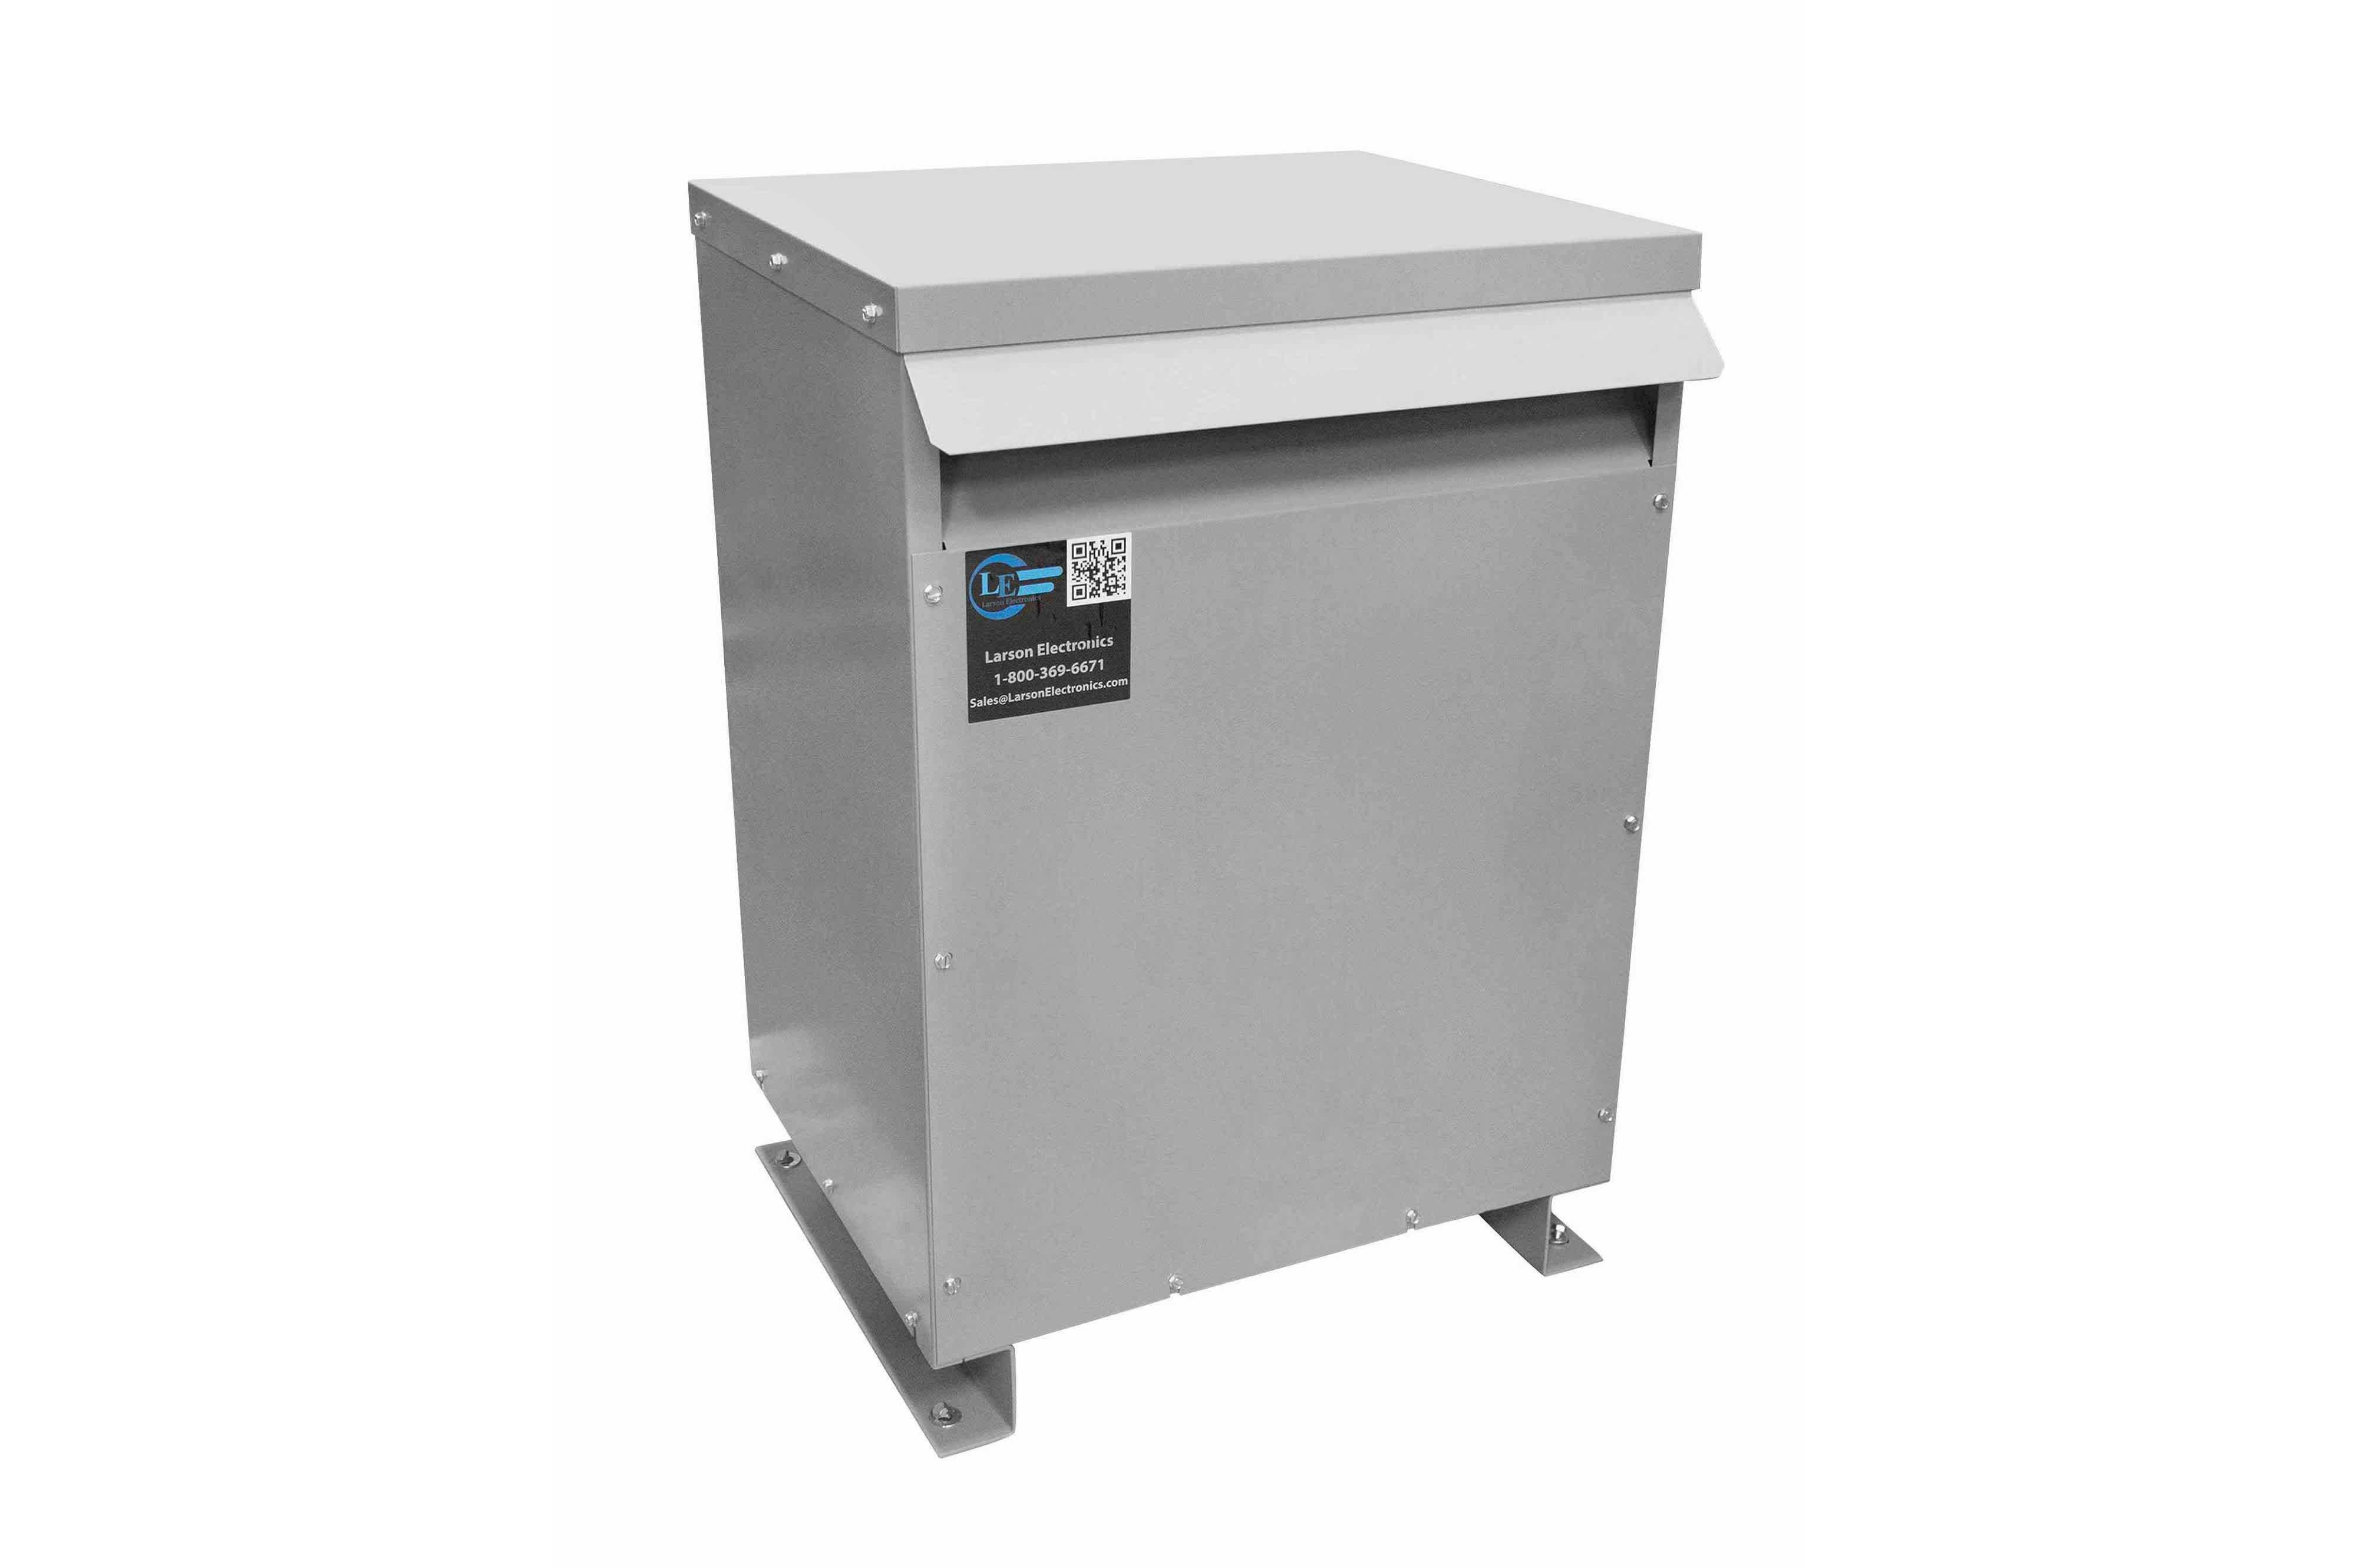 14 kVA 3PH Isolation Transformer, 208V Wye Primary, 208Y/120 Wye-N Secondary, N3R, Ventilated, 60 Hz